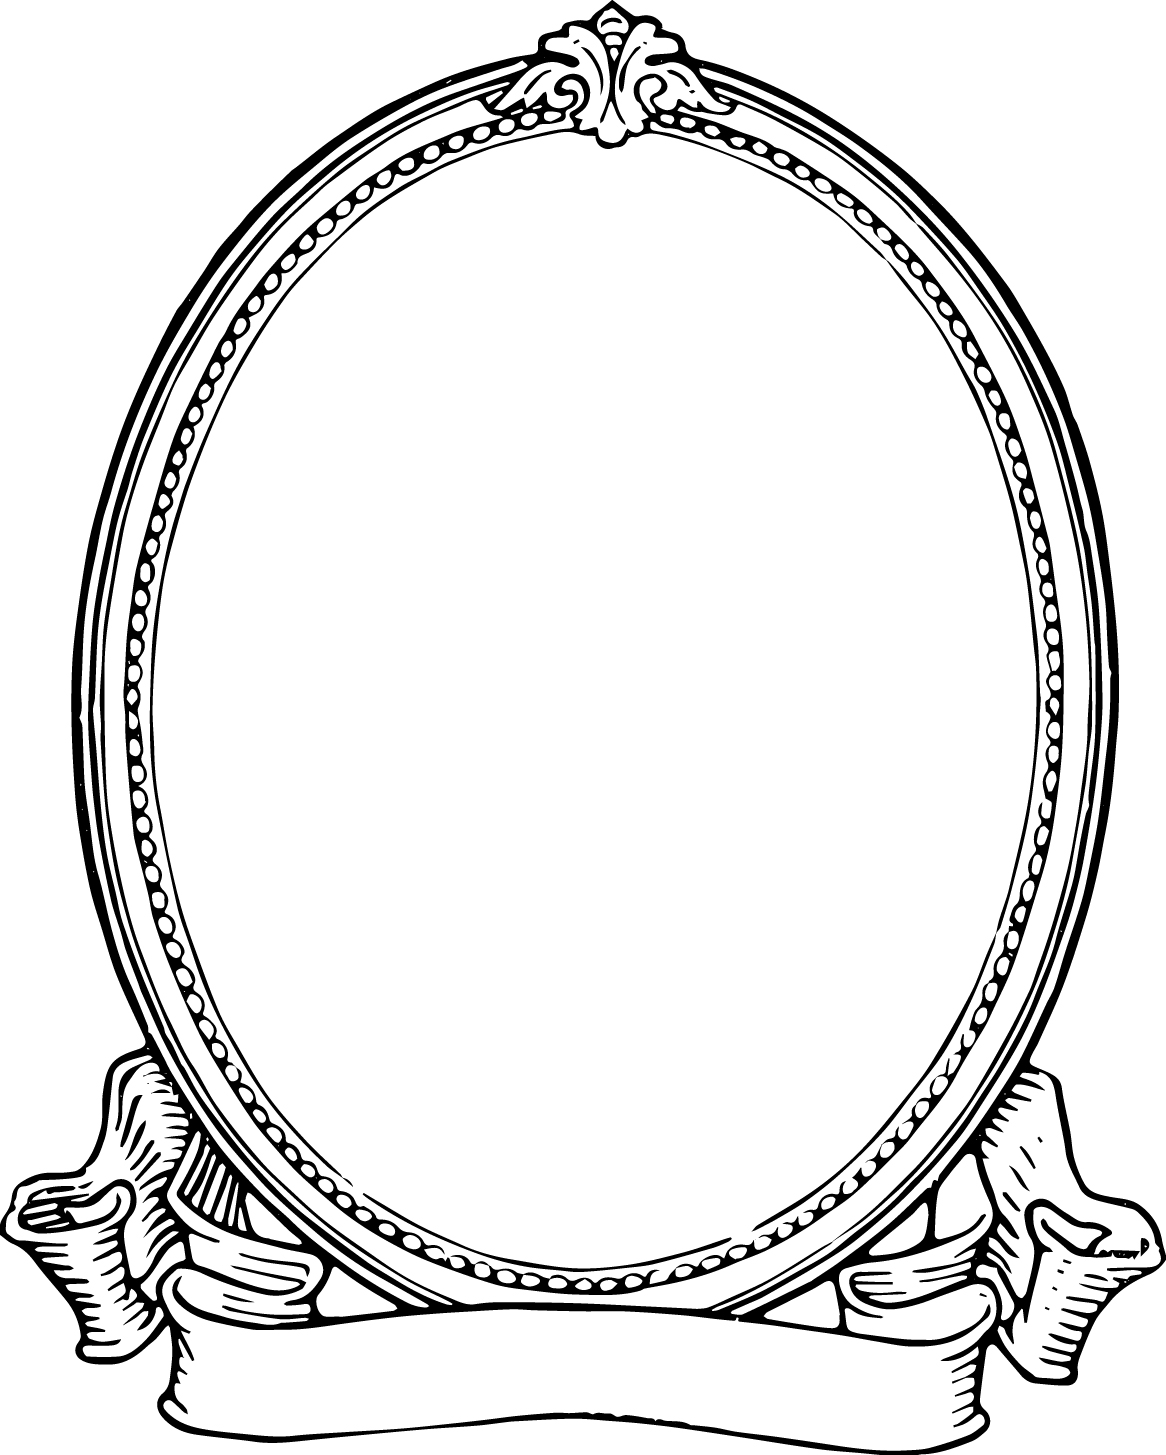 Photo Frame Clipart | Free download best Photo Frame Clipart on ...